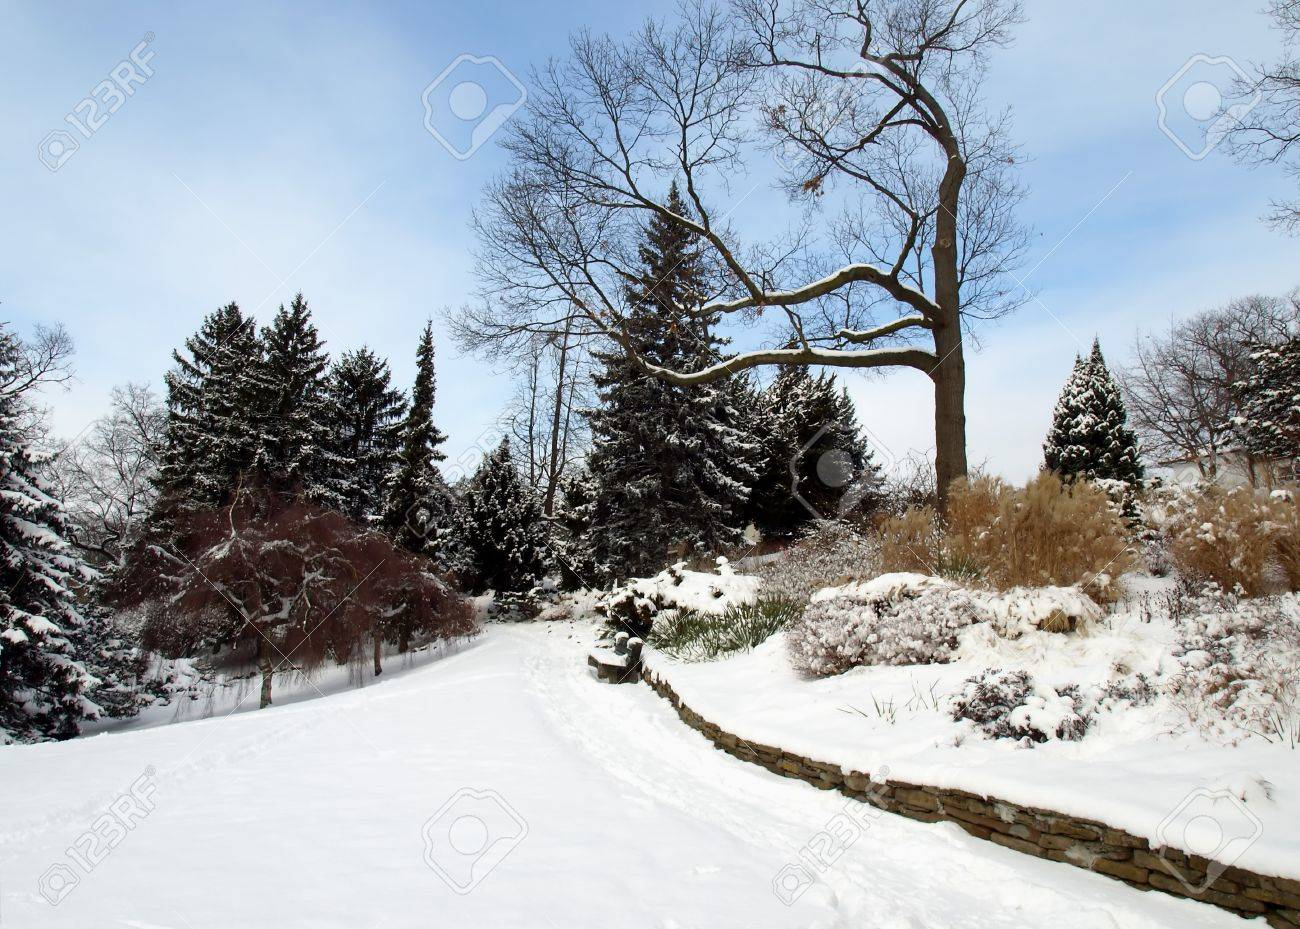 winter garden snow scene with park bench stock photo picture and